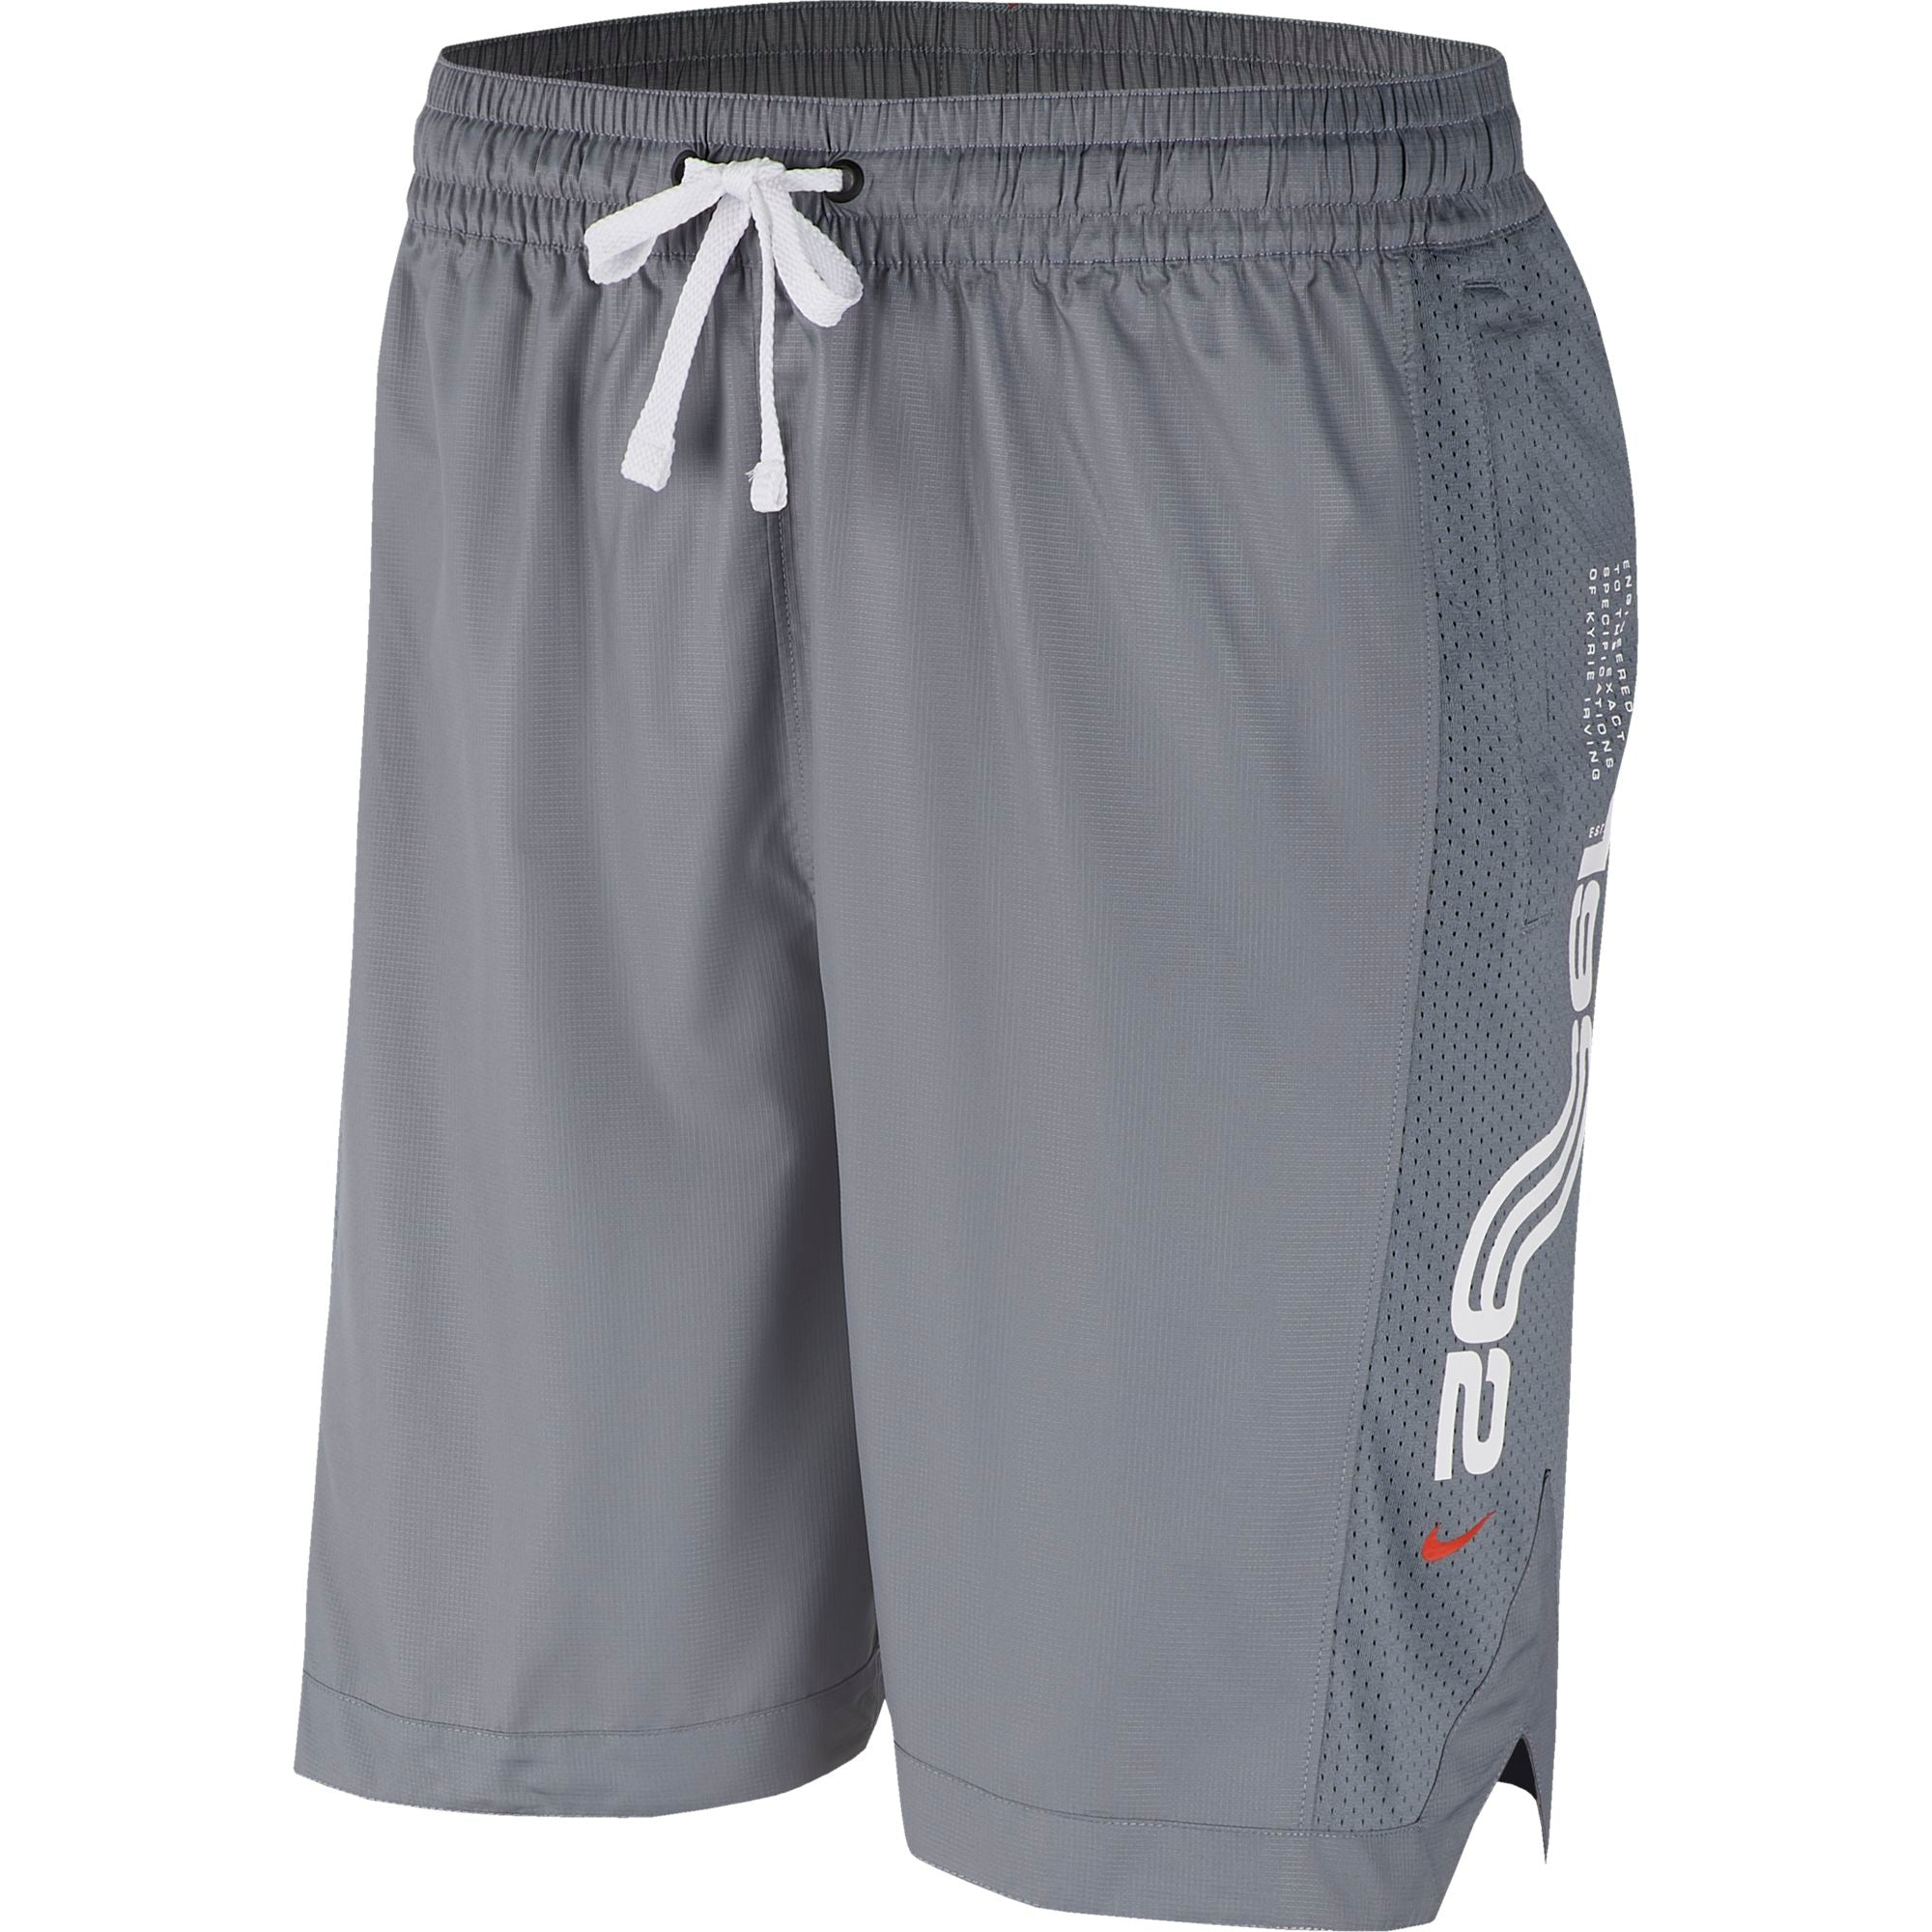 Nike Kyrie Dri-Fit Basketball Shorts - NK-BV9292-065